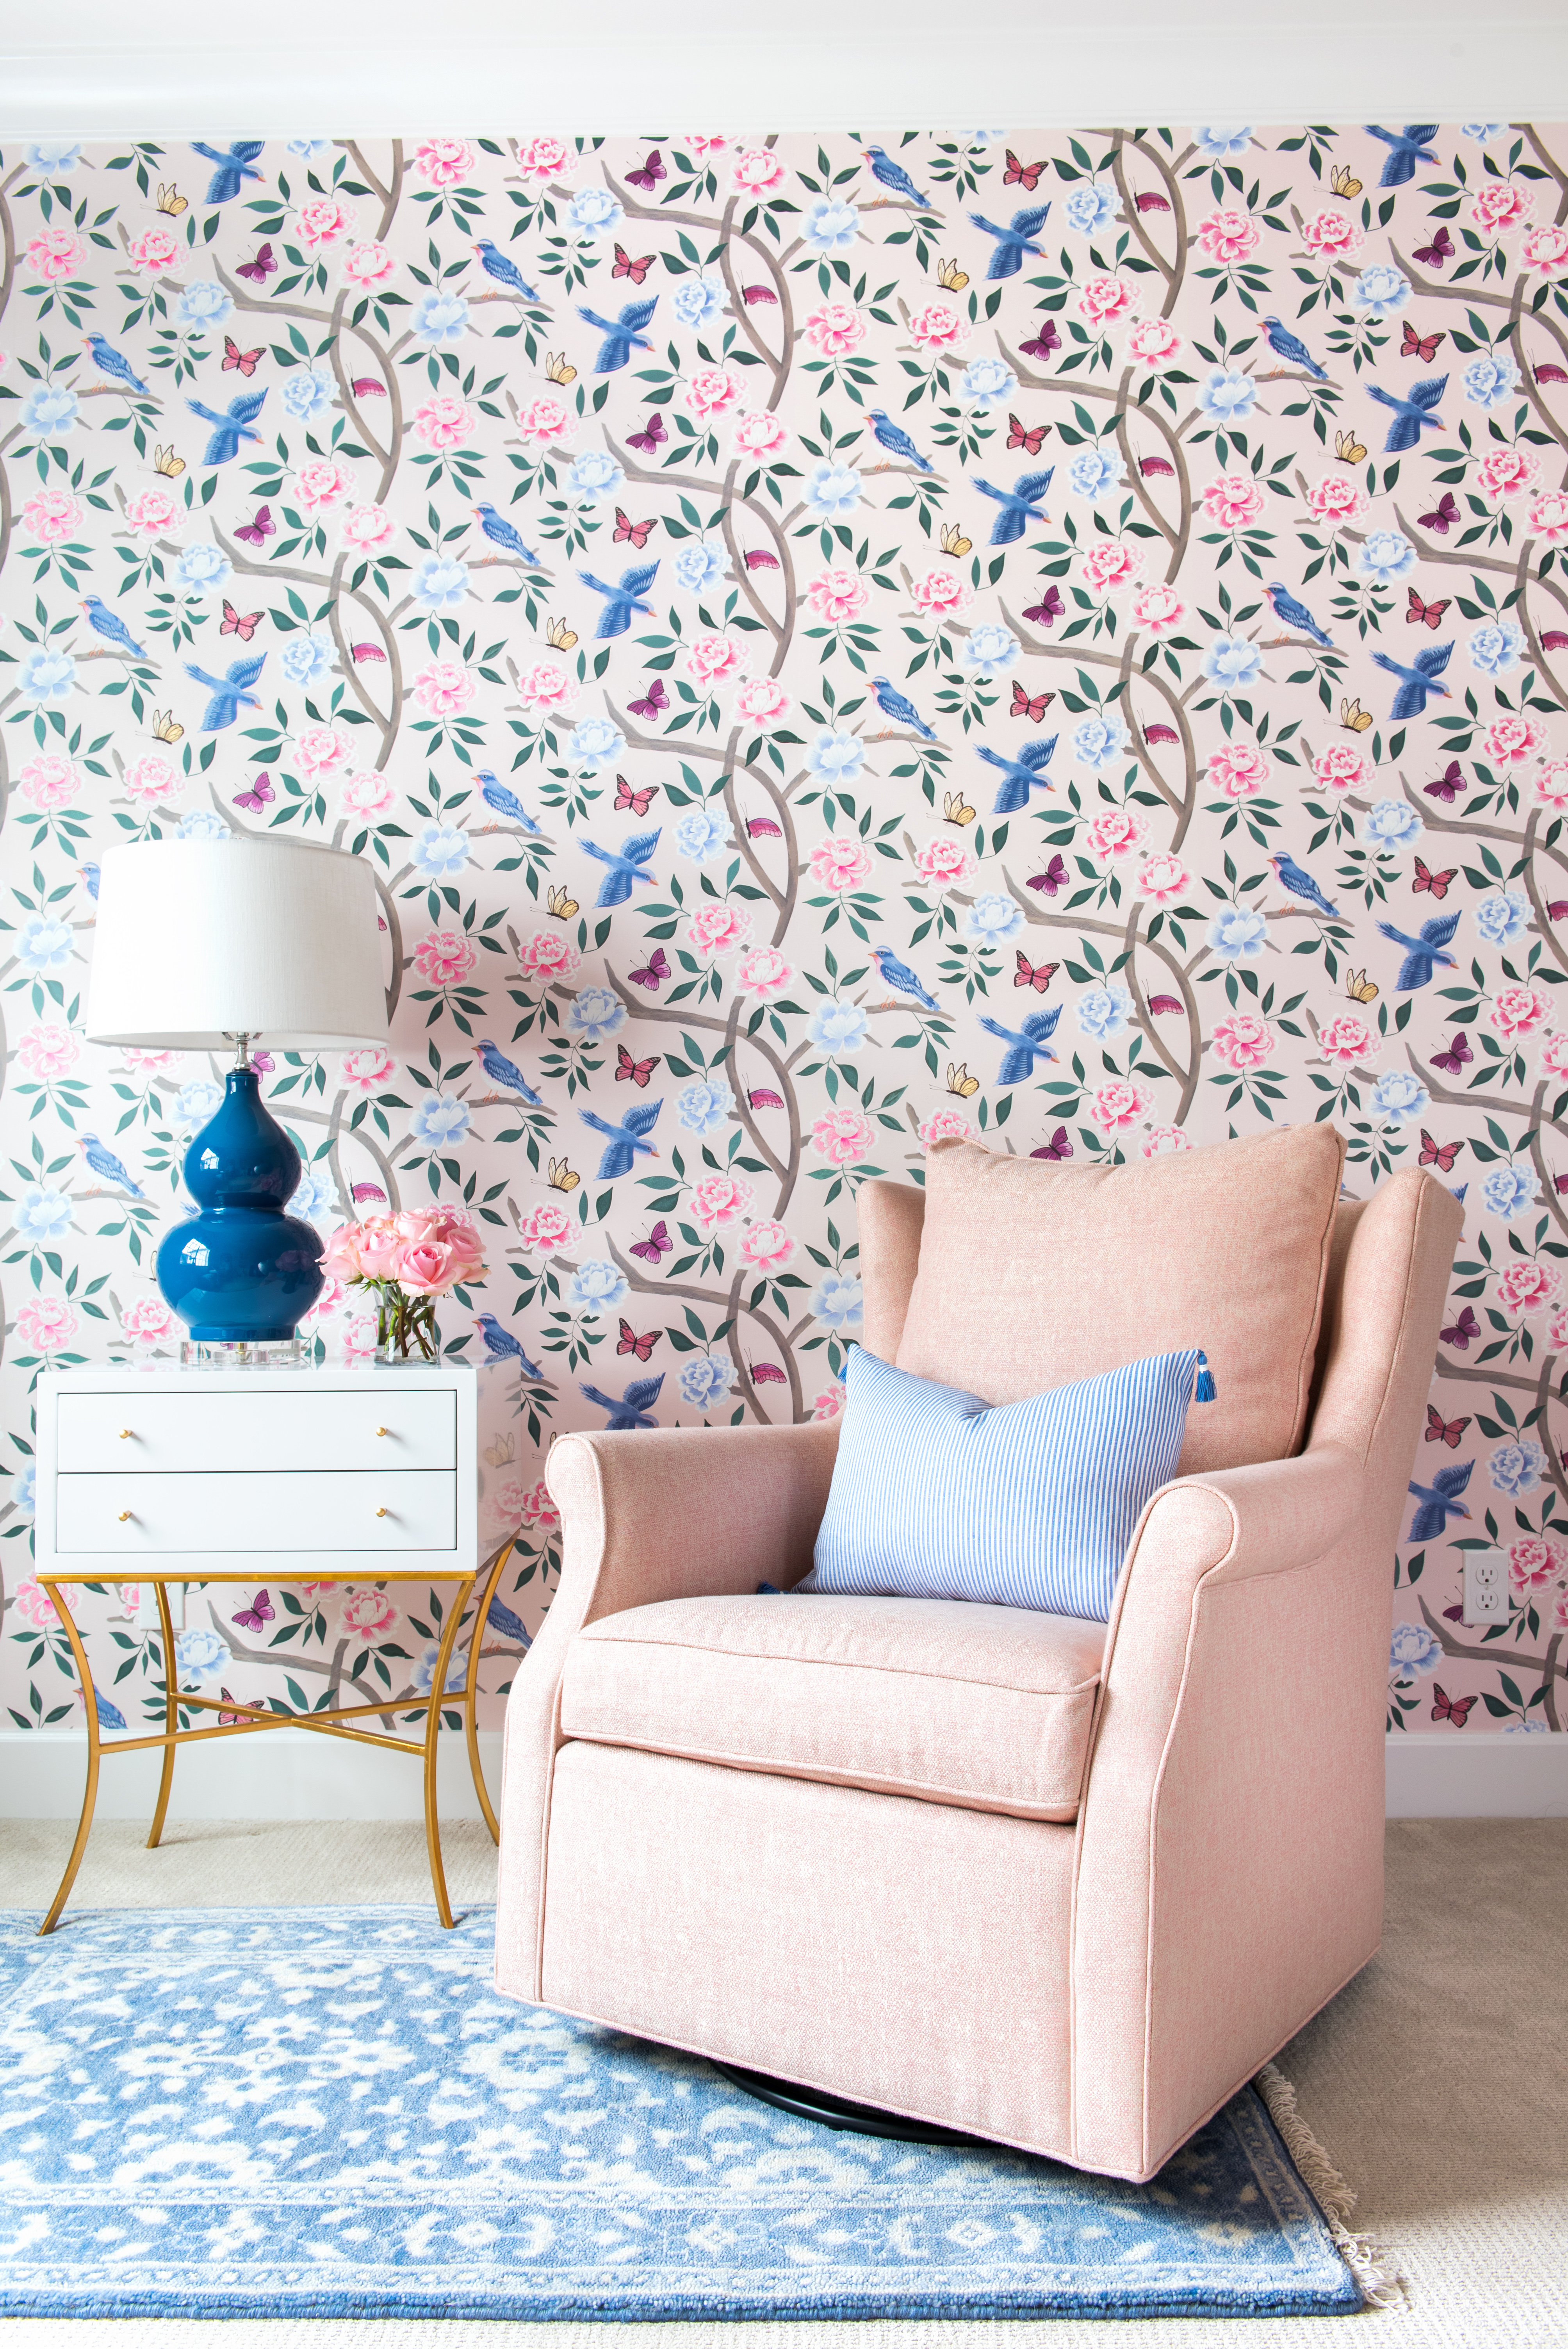 Blush-Chinoiserie-from-Caitlin-Wilson-wallpaper-wp3003811